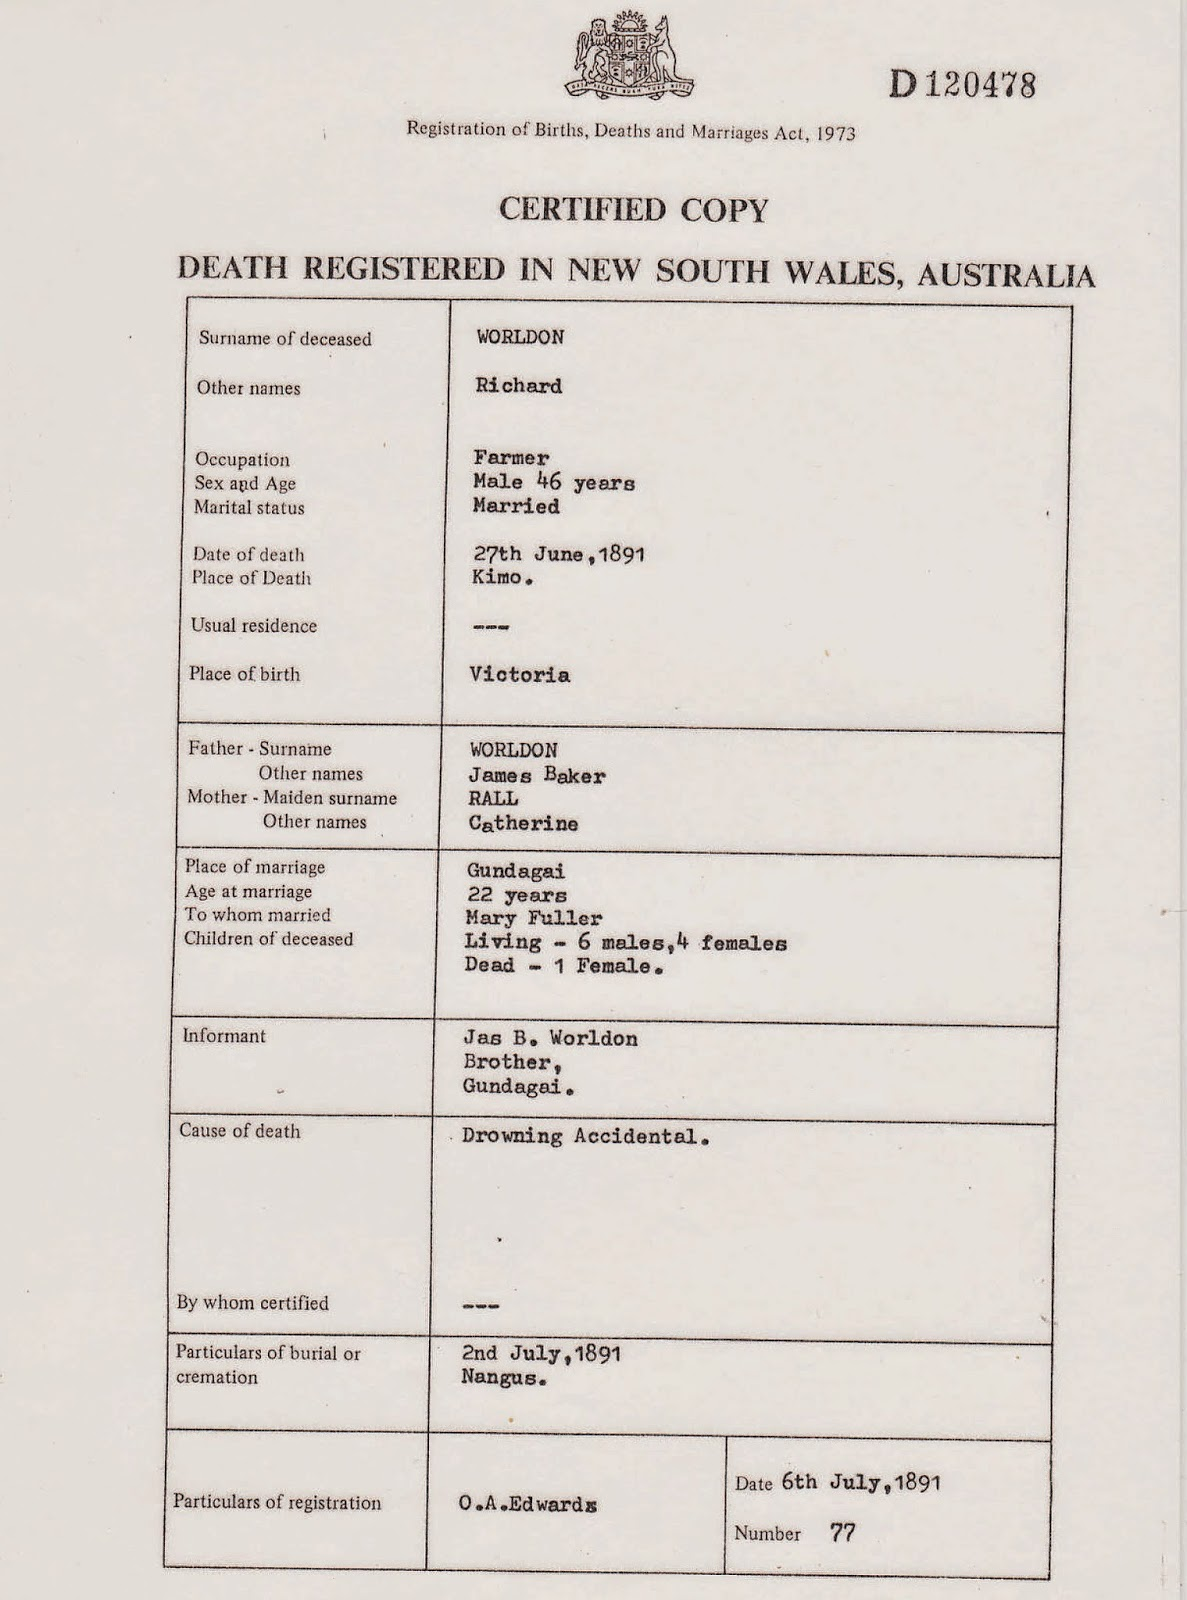 Death certificate template victoria gallery certificate design death certificate template victoria images certificate design death certificate templates gallery templates example free download death yadclub Choice Image